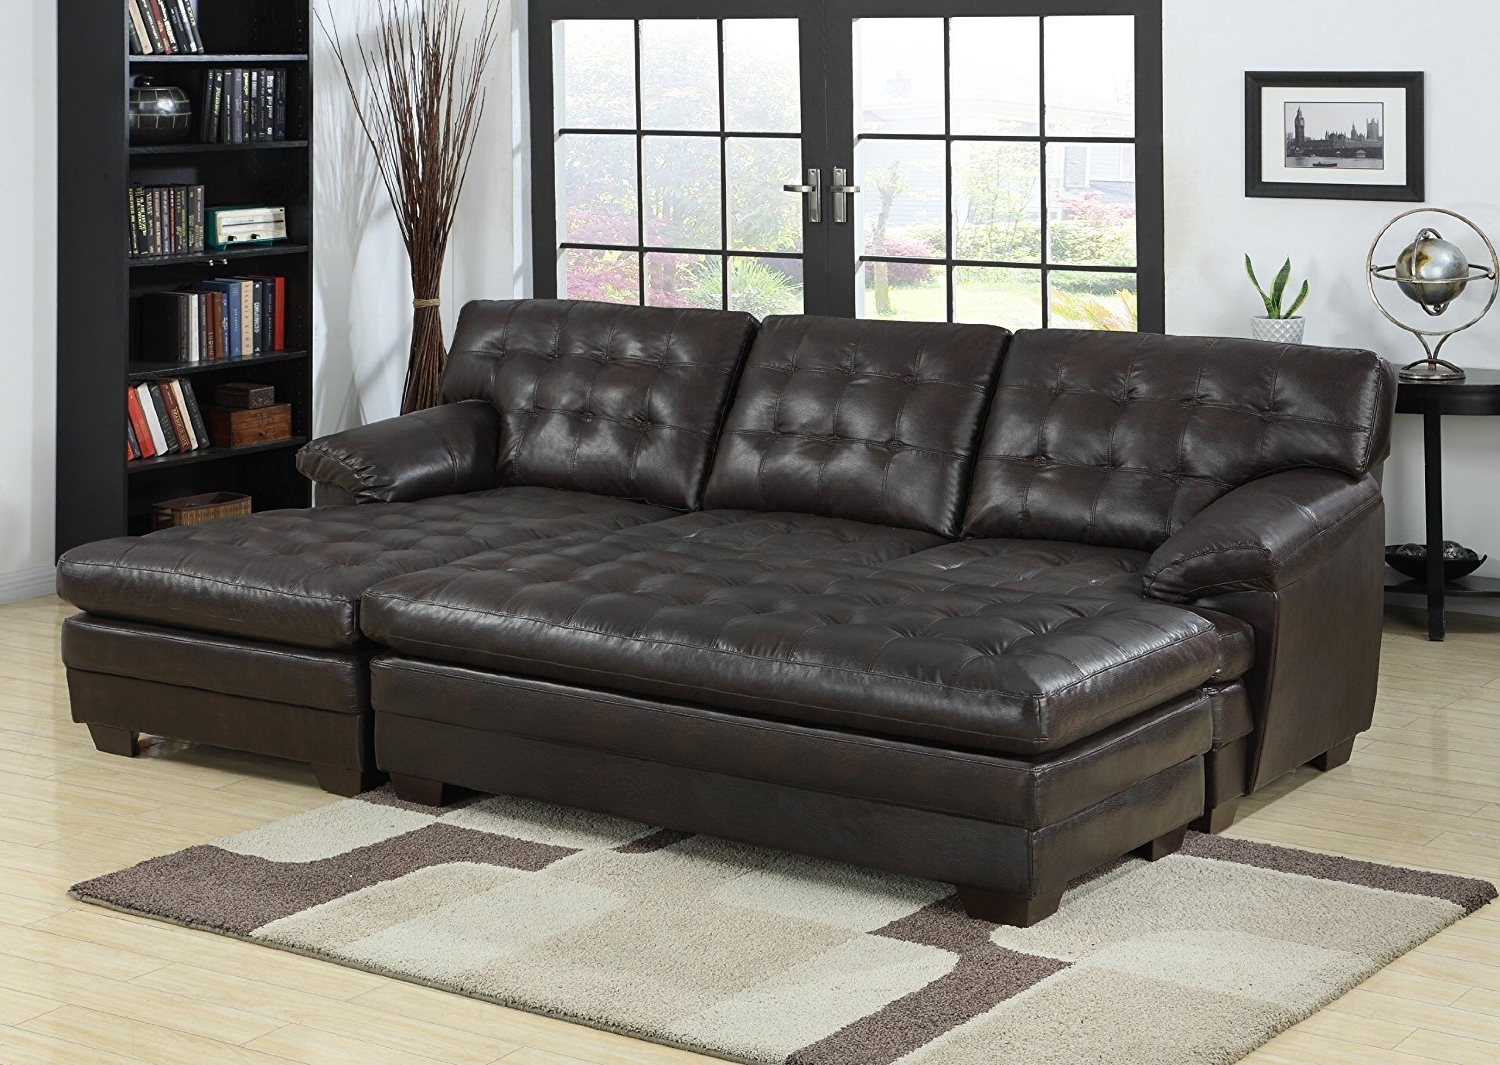 Current 2 Piece Sectional Sofas With Chaise Throughout Amazon: Homelegance 9739 Channel Tufted 2 Piece Sectional Sofa (View 7 of 15)